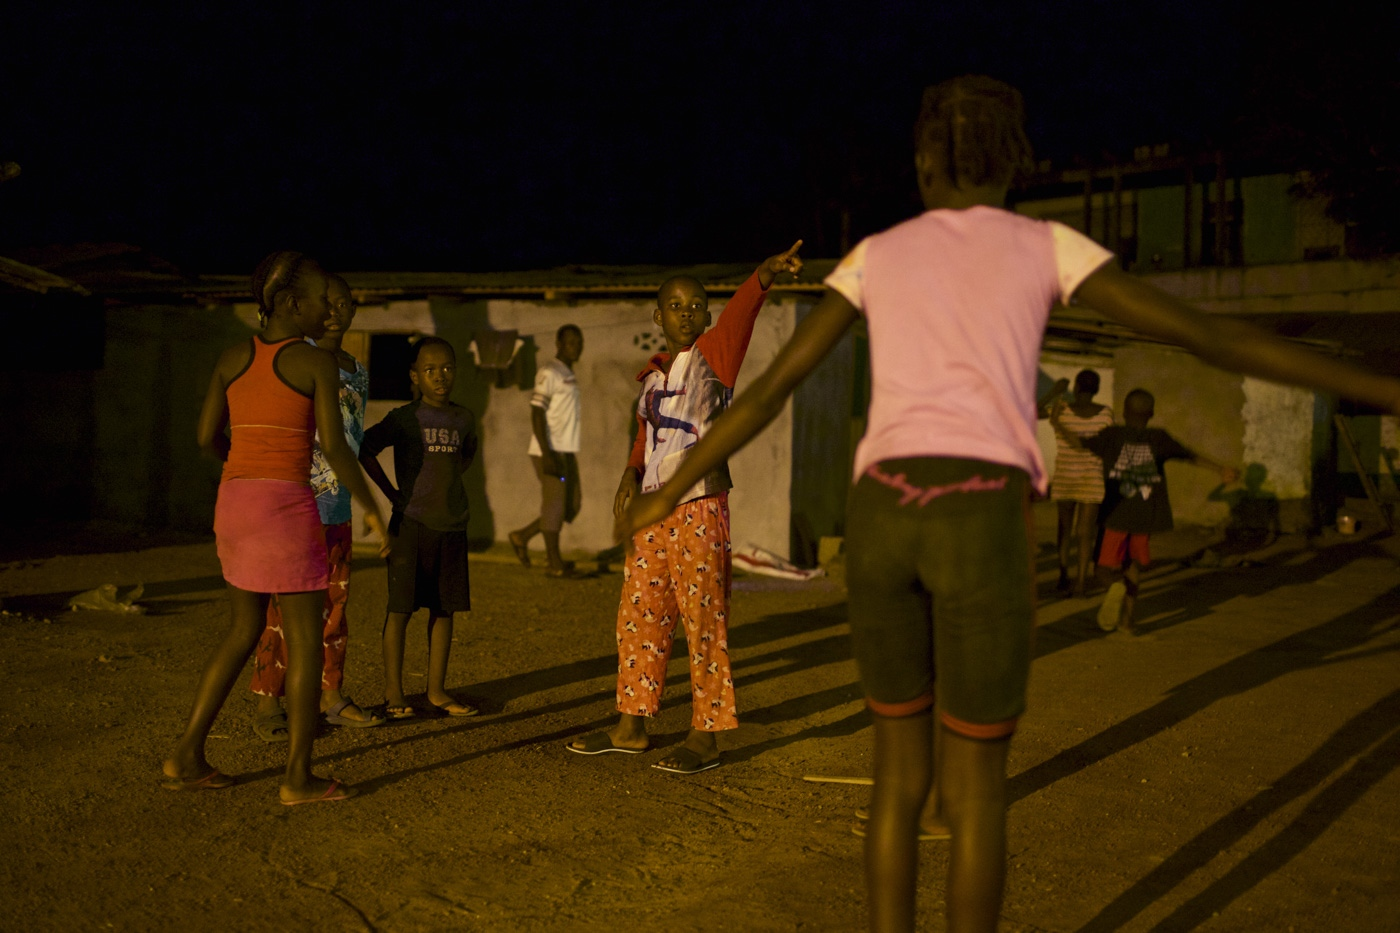 Monrovia, Liberia. 09 August 2015. Children play late at night outside a restaurant popular with wealthy Liberians and expats. As the restaurant is using a generator to light up the parking spaces the surrounding area became a popular place among local population to hang out at night as they can't afford access to electricity.